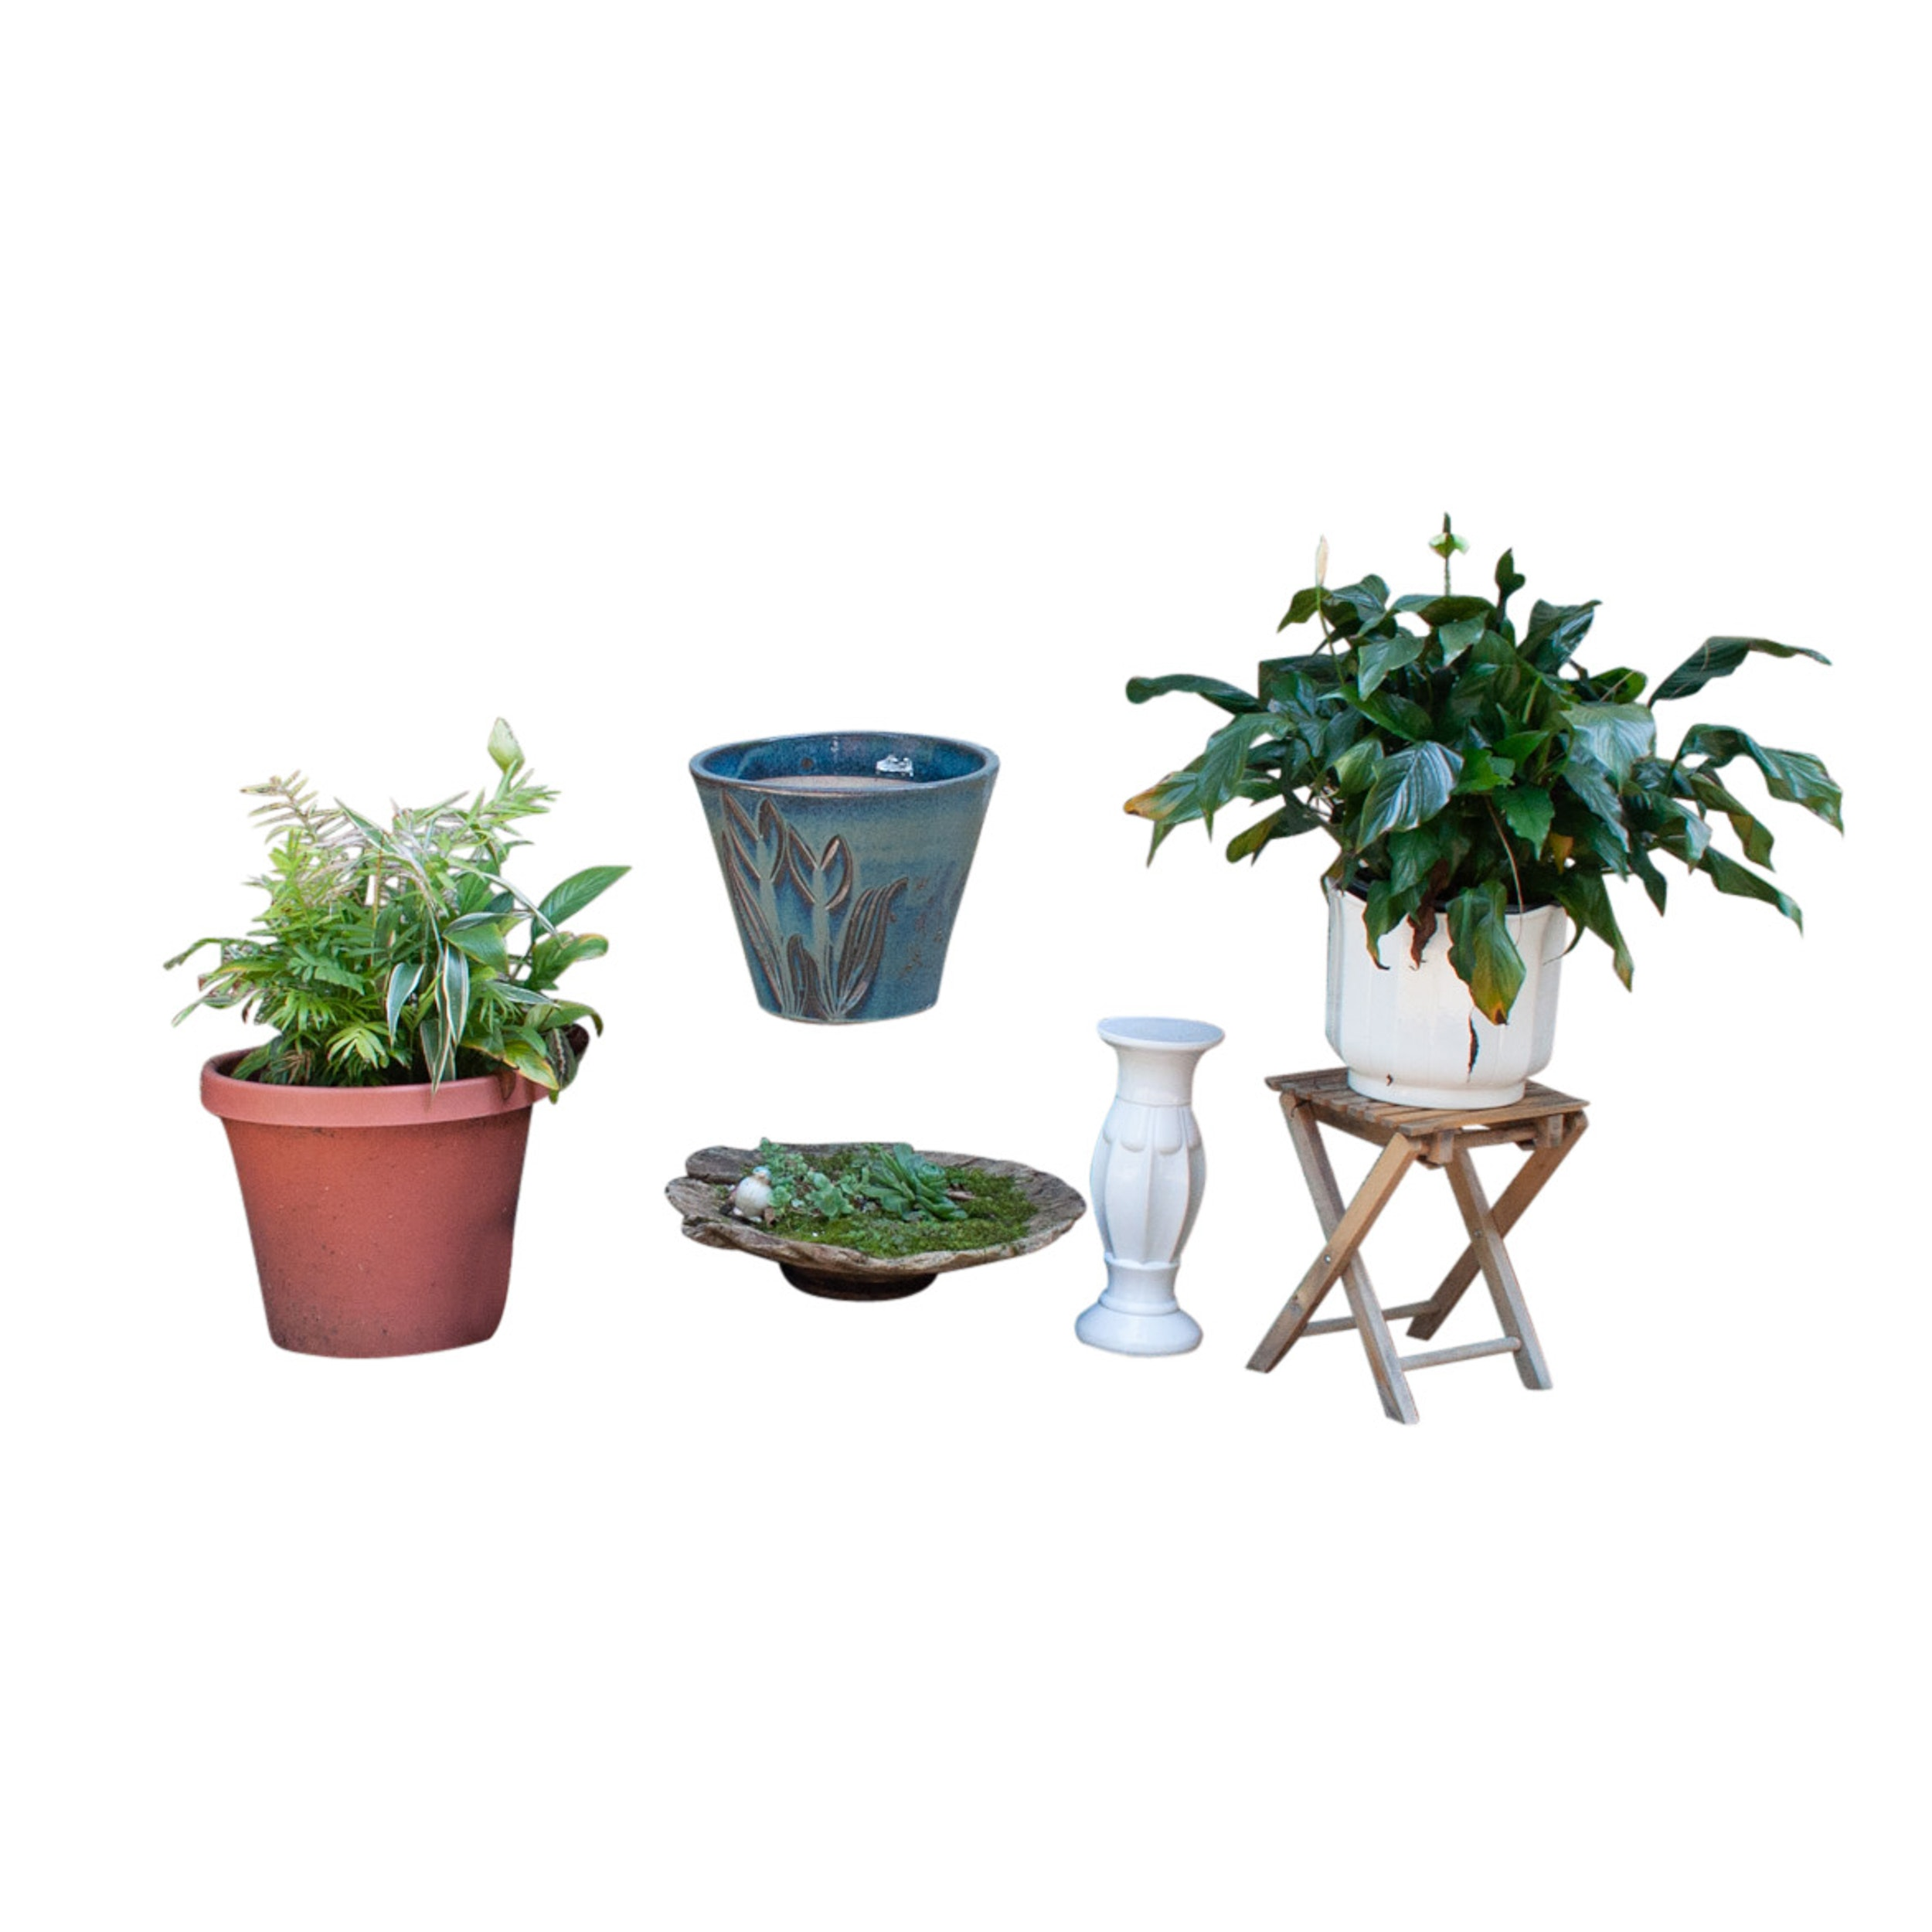 Outdoor Plants and Planters